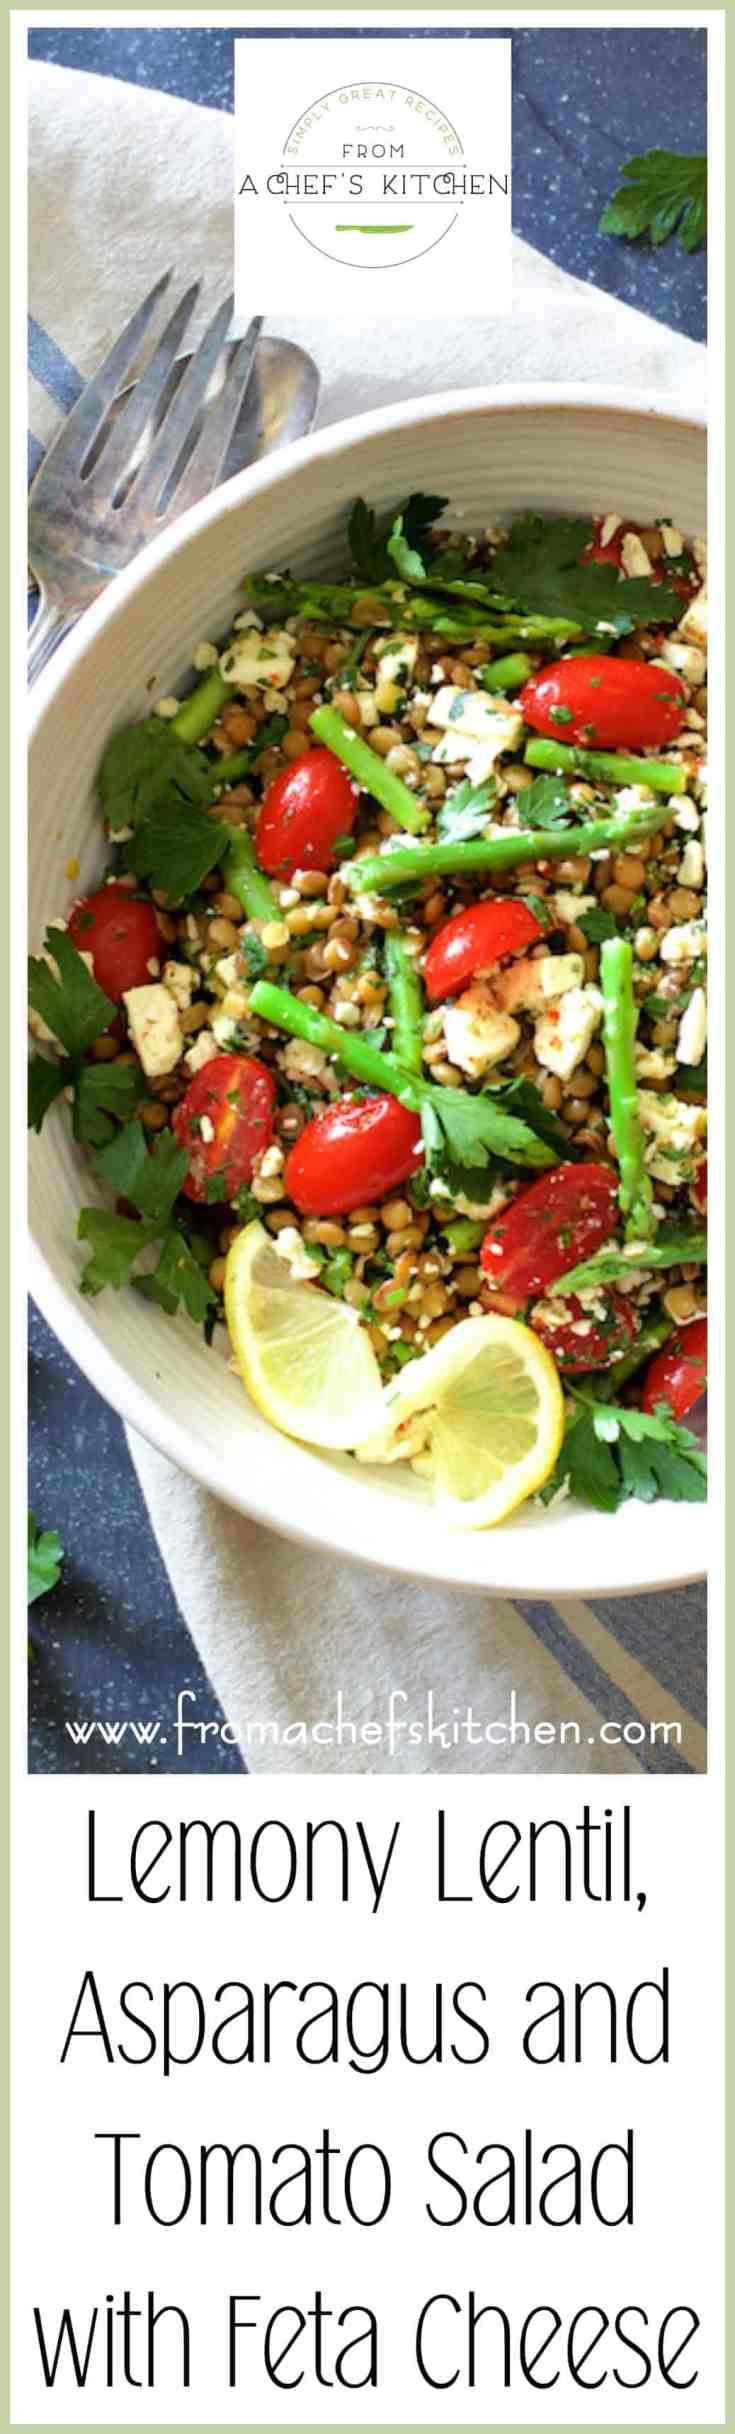 Lemony Lentil, Asparagus and Tomato Salad with Feta Cheese is light, healthful, perfect for a spring meal and will go with just about anything! #lentil #asparagus #tomato #Greekfood